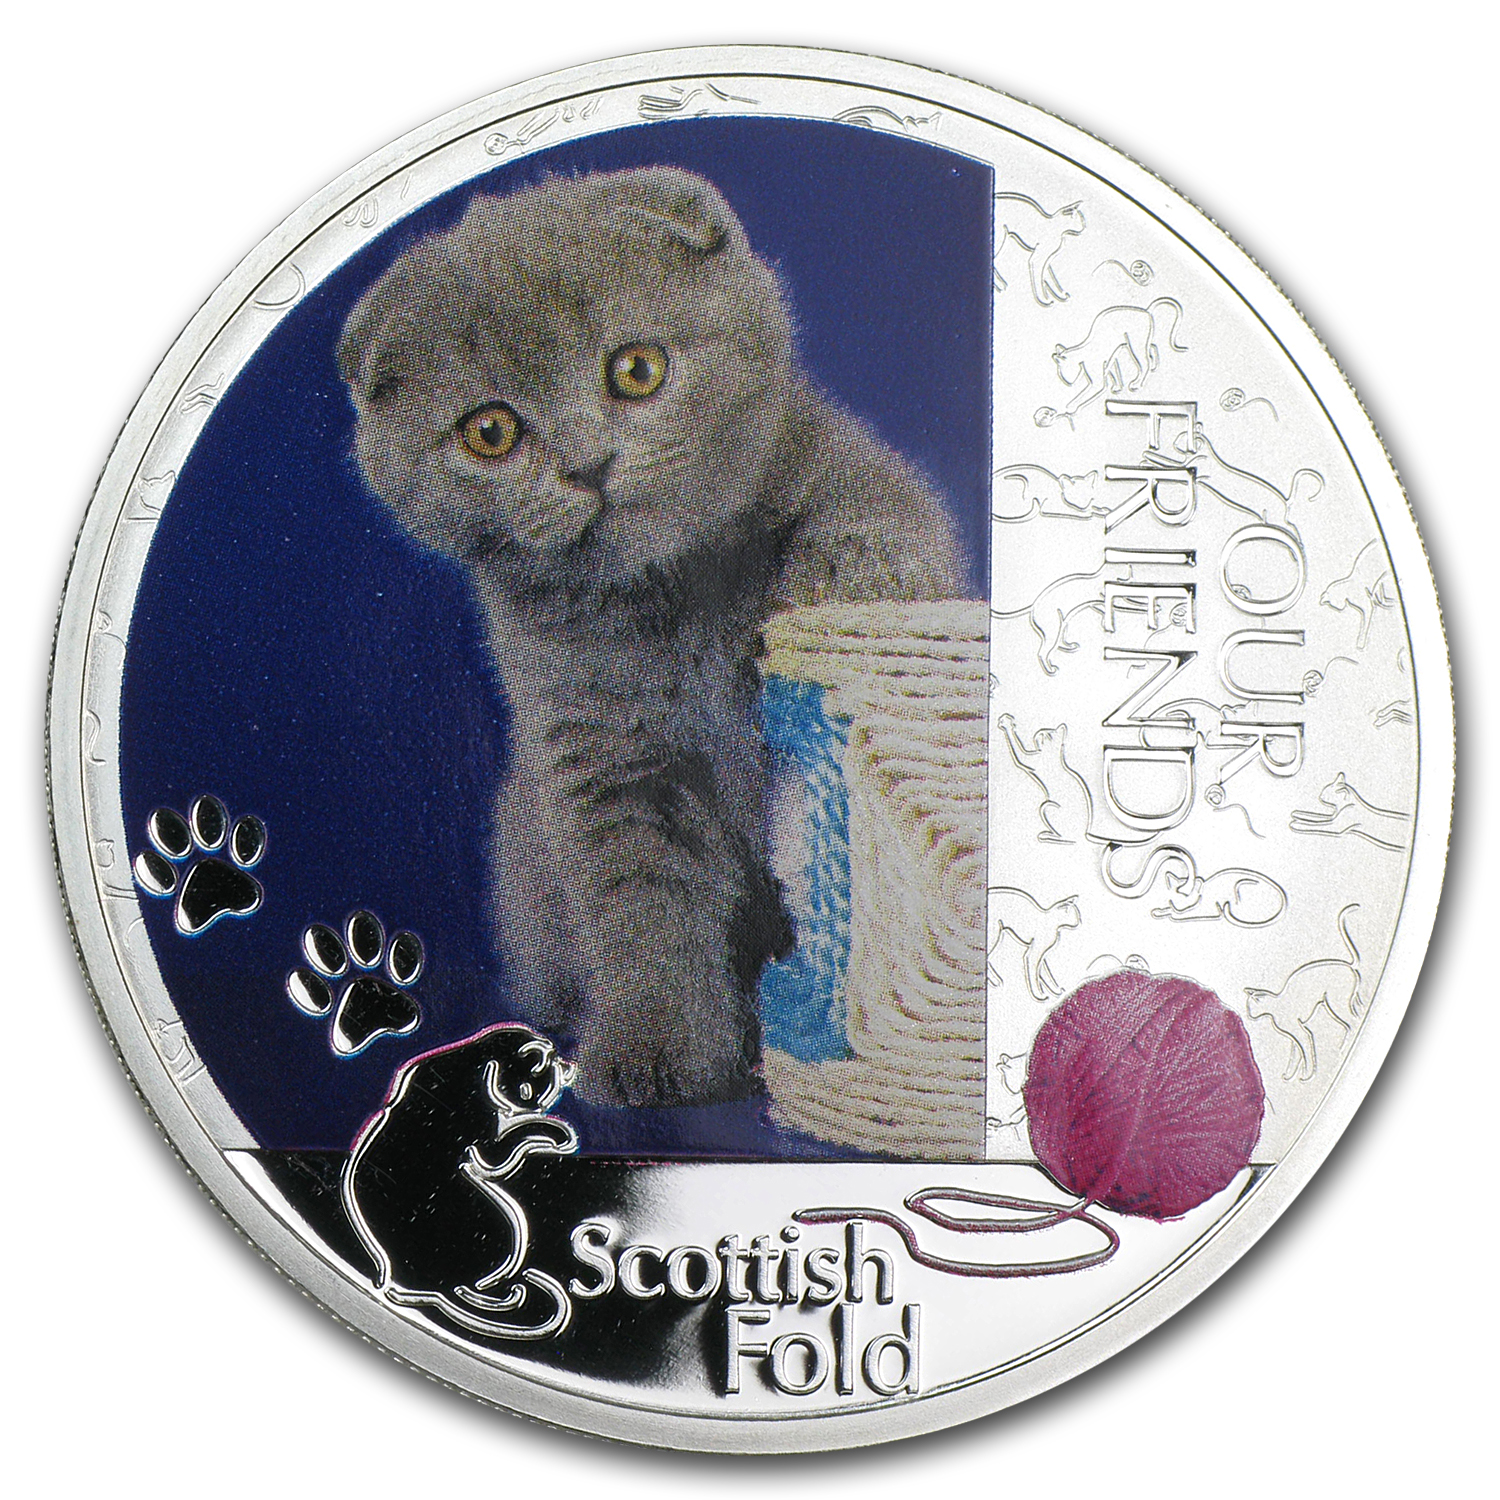 2012 Niue 1 oz Silver Friends Kitten Collection Scottish Fold